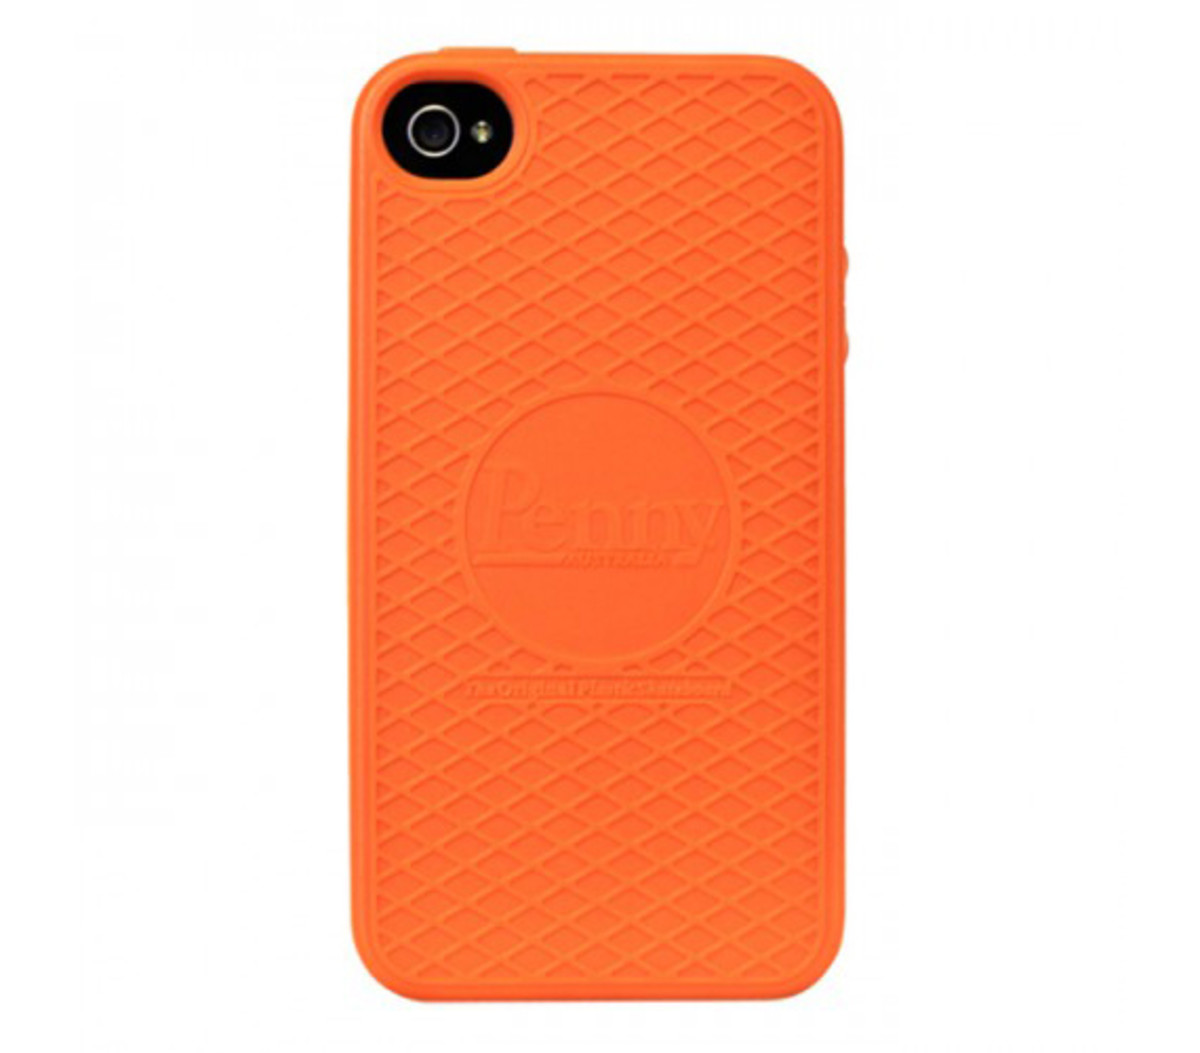 penny-skateboards-iphone-cover-05